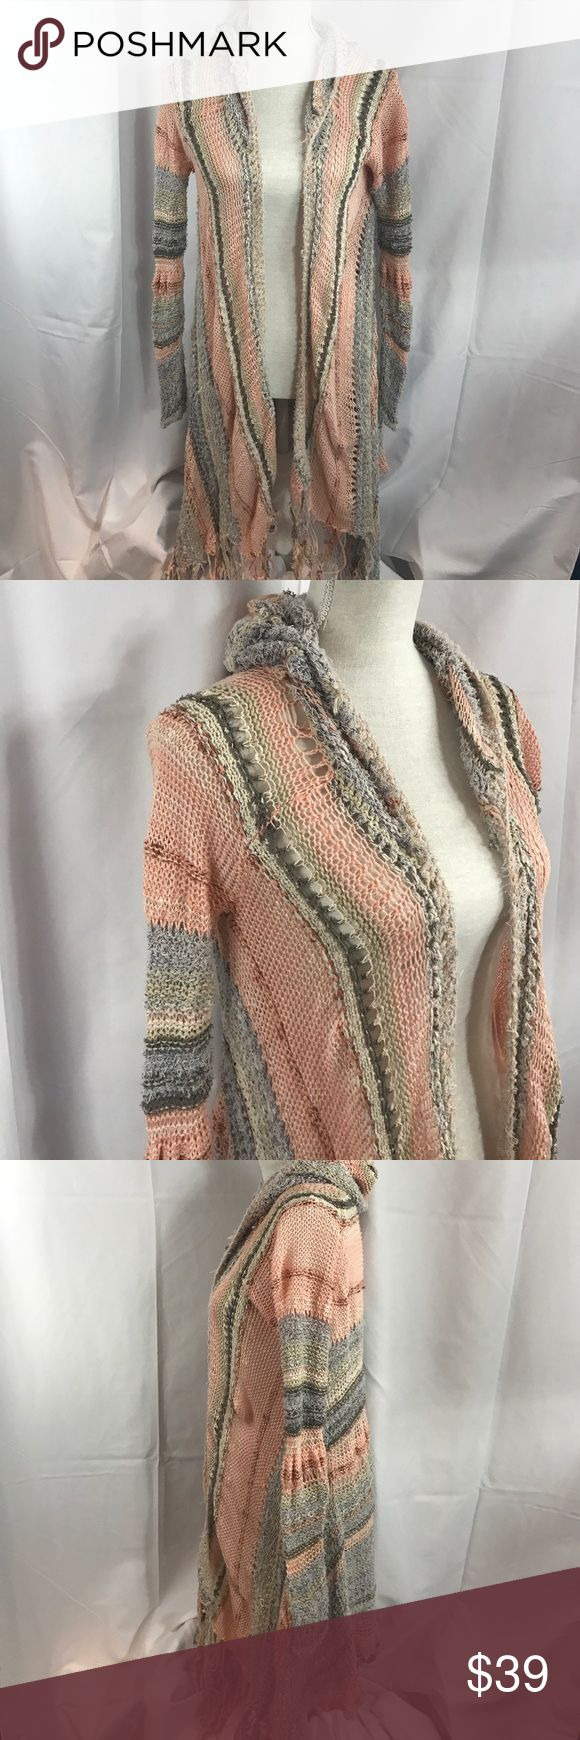 Free People szXS rough knit open hooded cardigan Good used condition Free People szXS rough knit open hooded cardigan w/mangled fringe... Free People Sweaters Cardigans